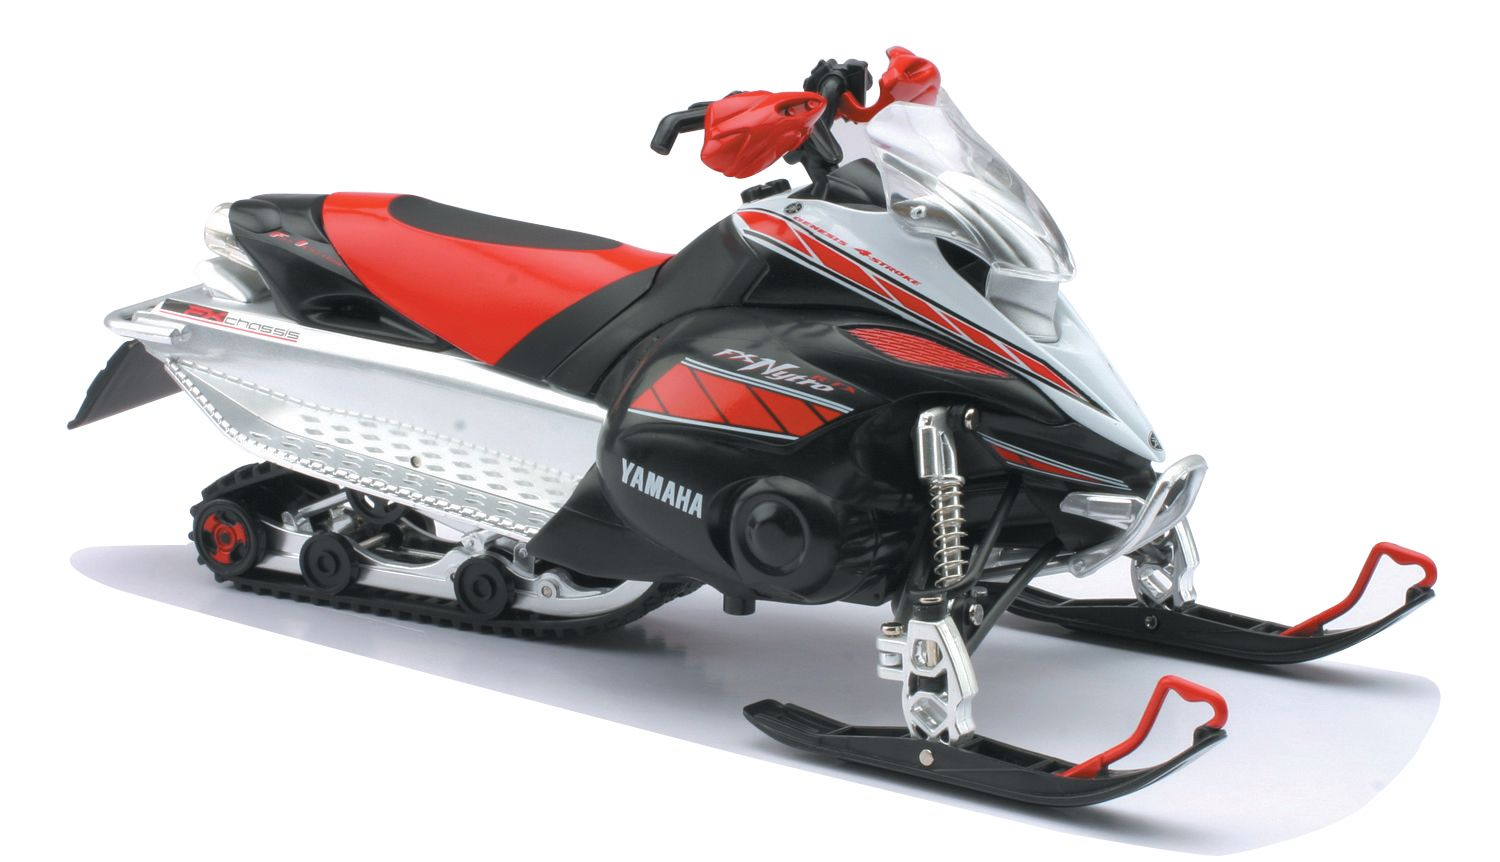 Click on image to download 2008-2010 YAMAHA FX NYTRO SNOWMOBILE REPAIR  MANUAL